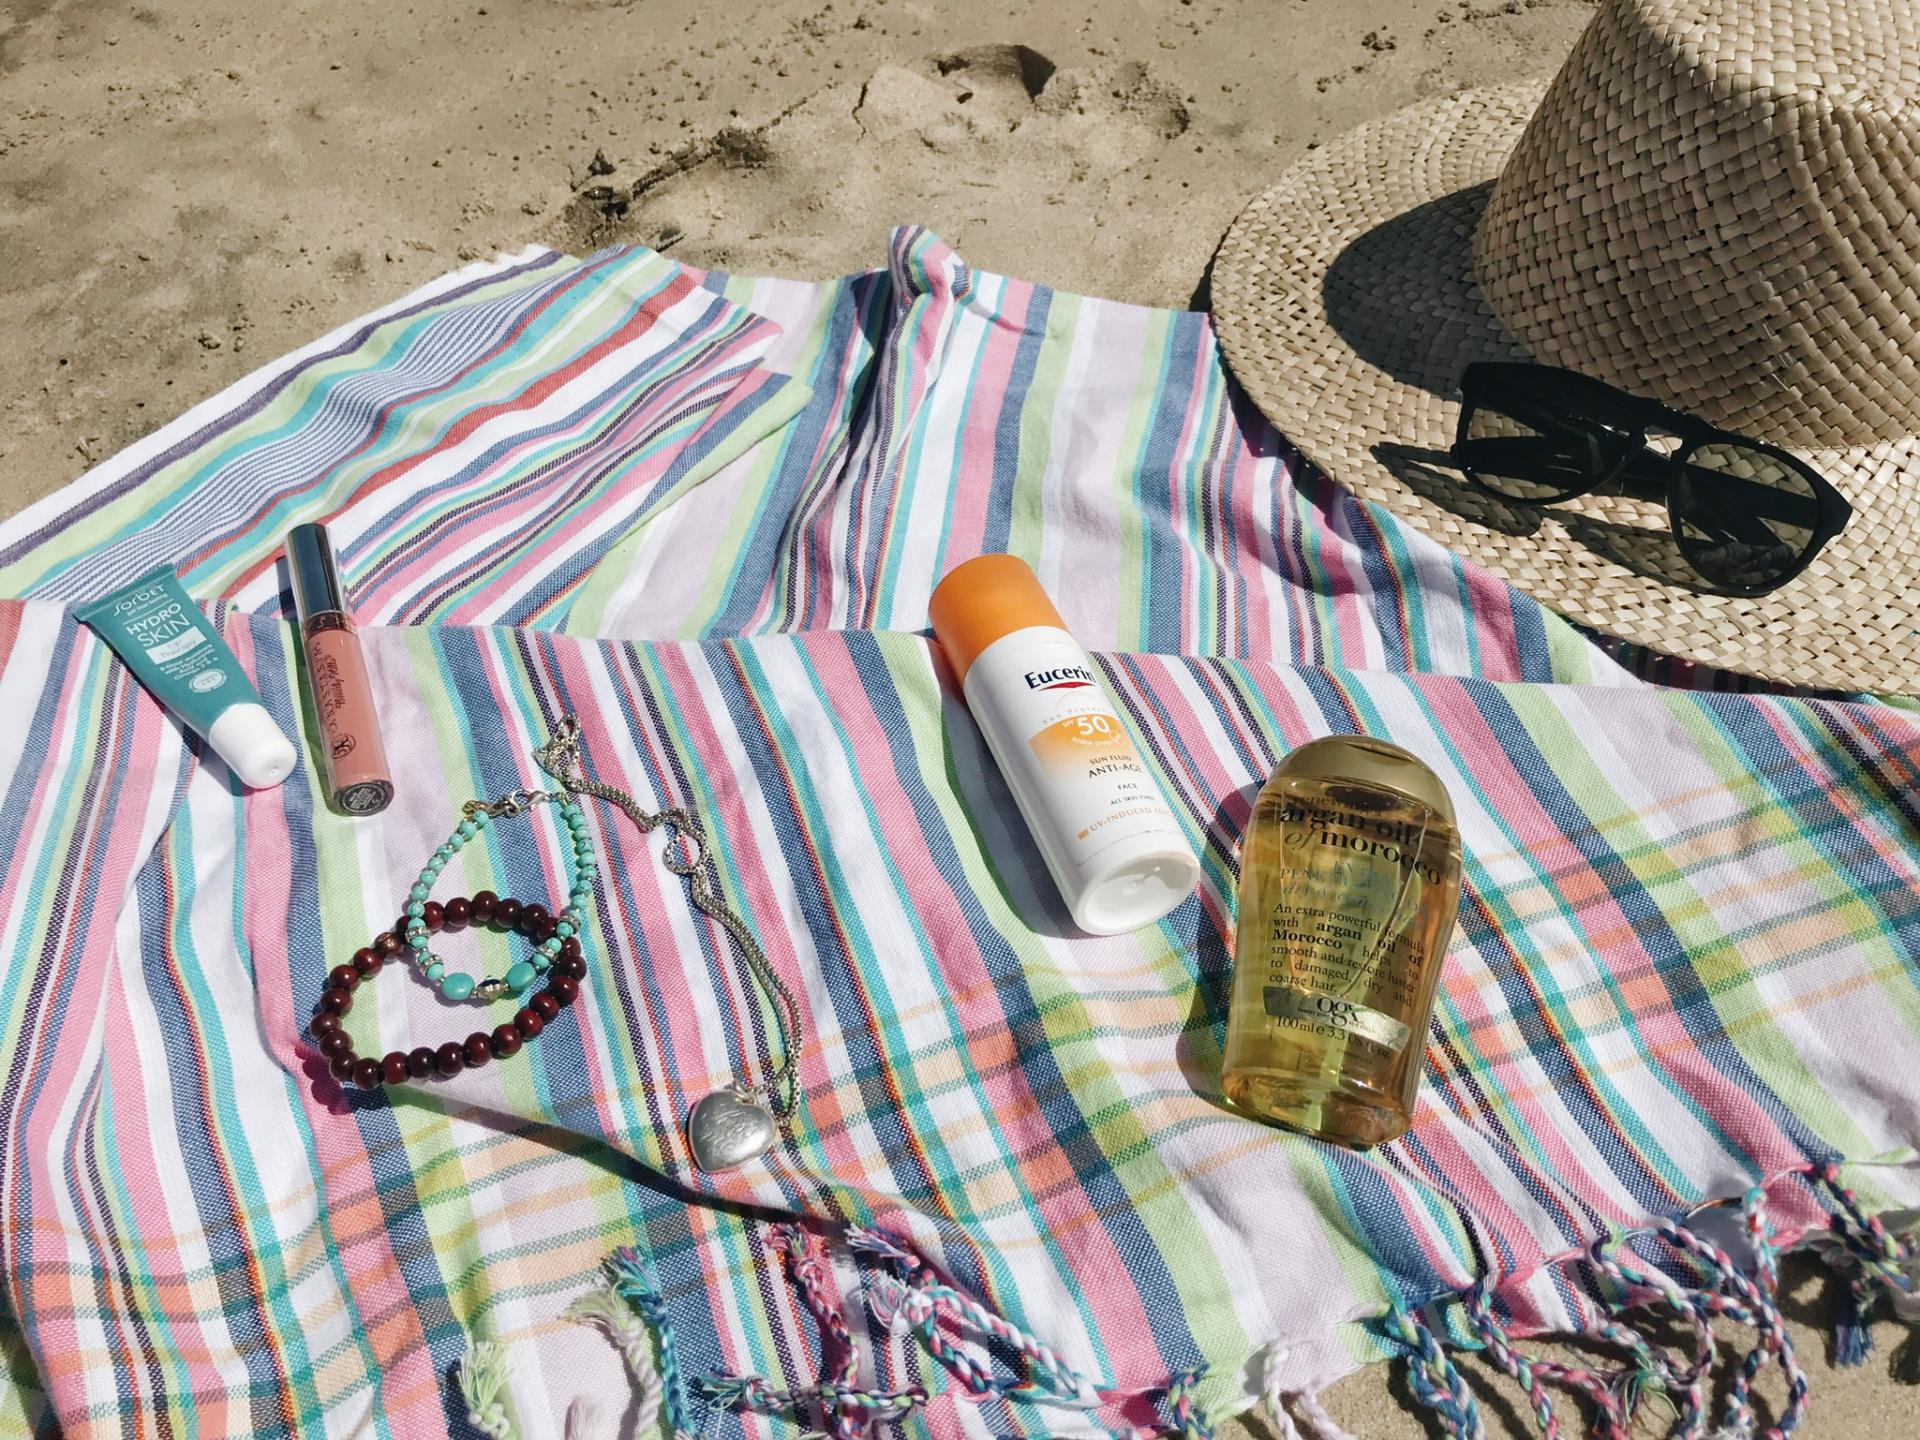 Sarong, shoes, hat, sunscreen, oil and sunglasses laid out on the beach